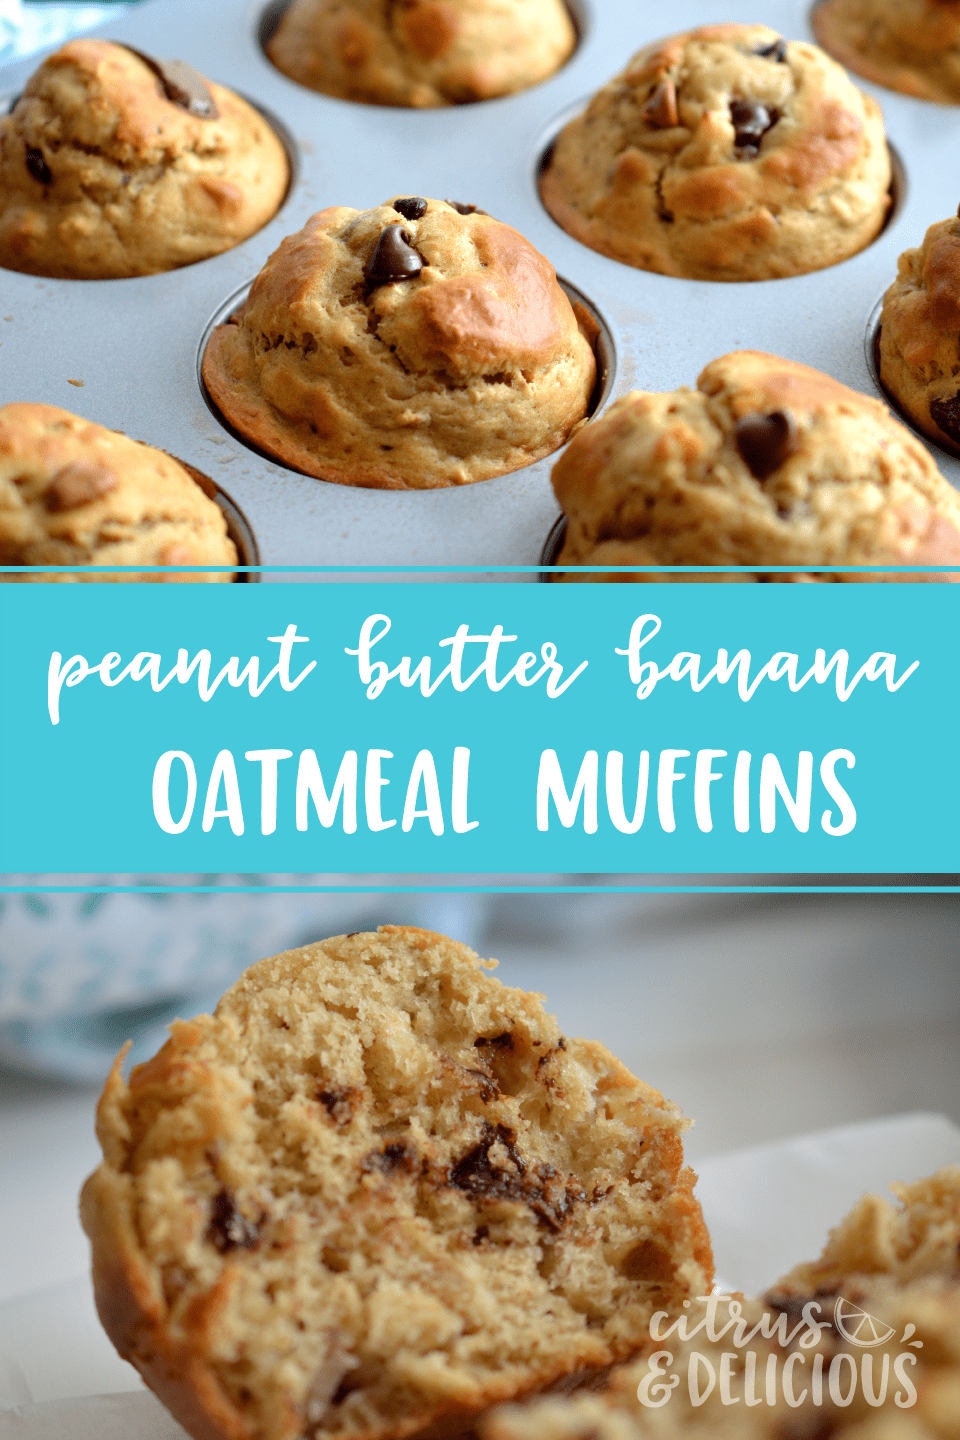 Sky high Peanut Butter, Banana and Oatmeal Muffins with chocolate and peanut butter chips scattered throughout the batter. This one bowl, no mixer required recipe makes delicious muffins in record time!